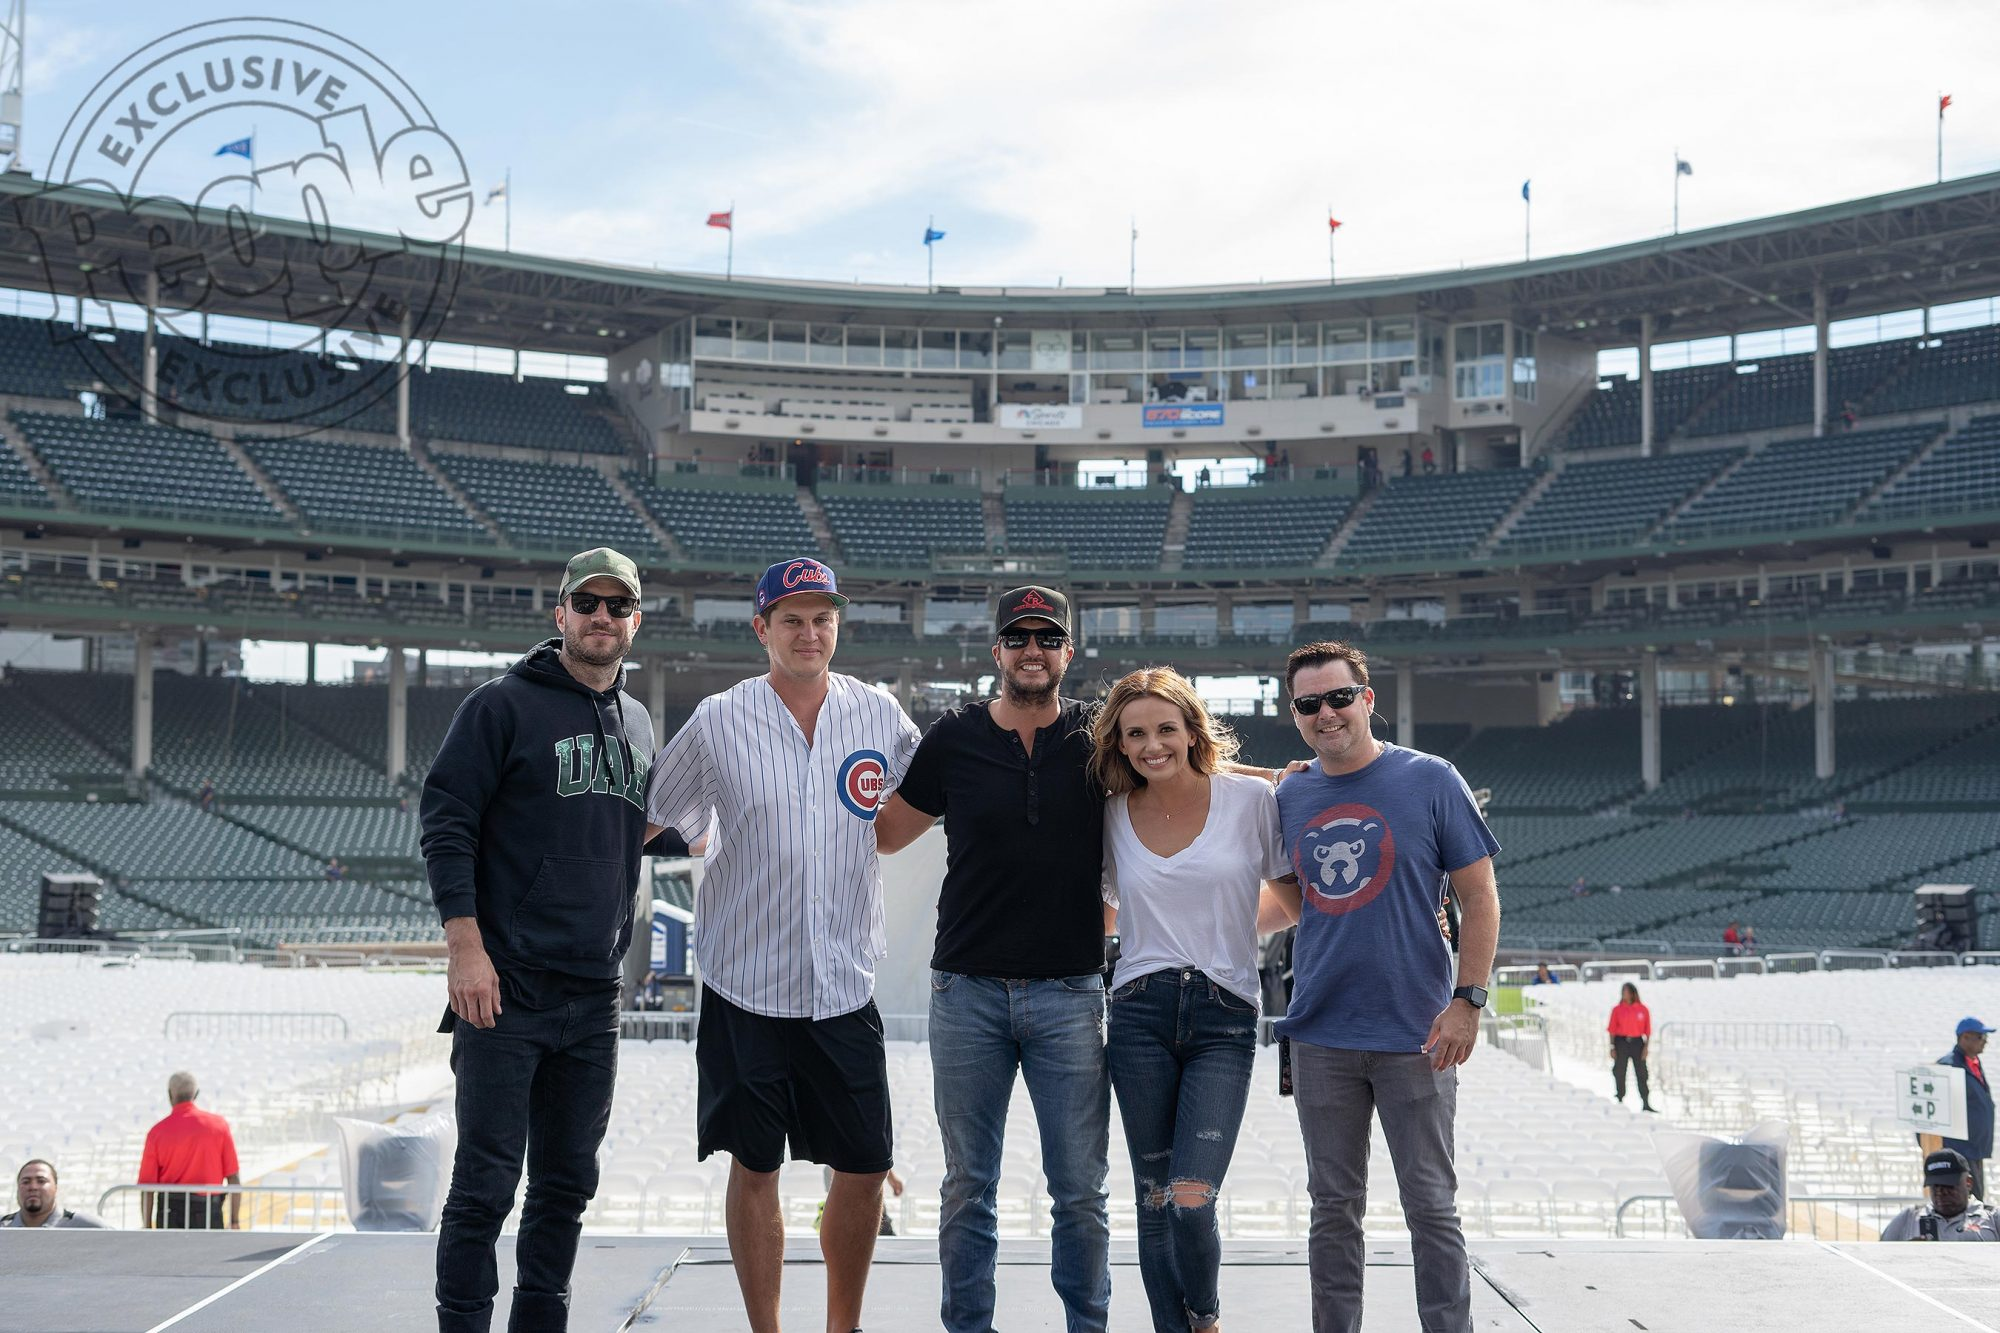 Chicago Goes Country! Luke Bryan, Sam Hunt, Jon Pardi and Carly Pearce Take Over Wrigley Field